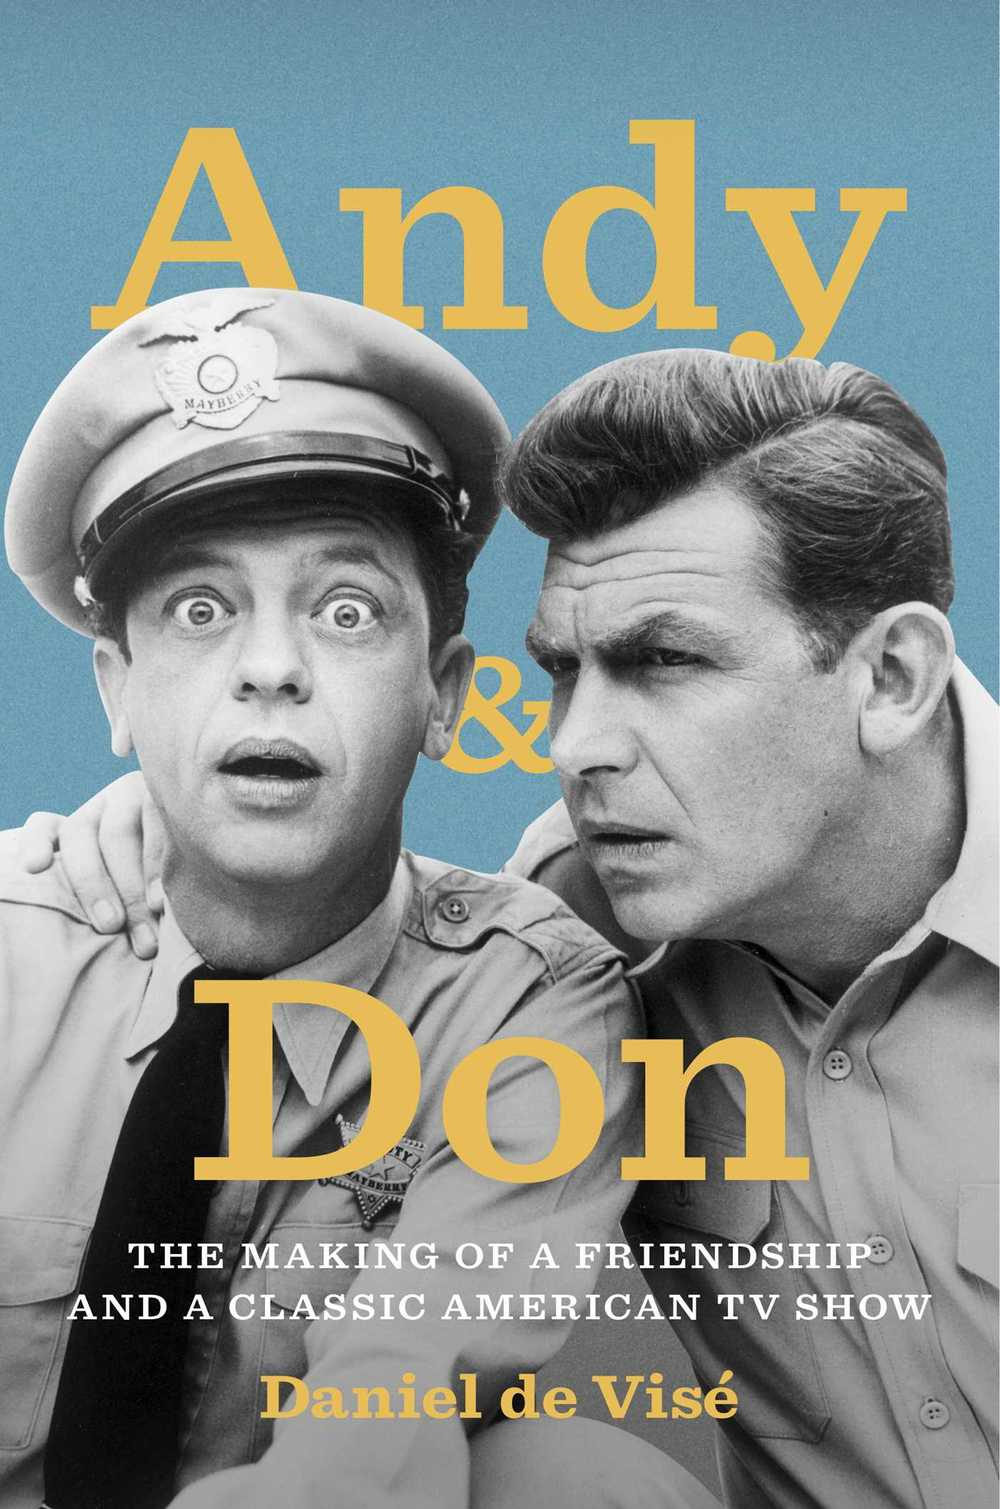 The author is Don Knotts's brother-in-law. His wife is Don's third wife's sister.